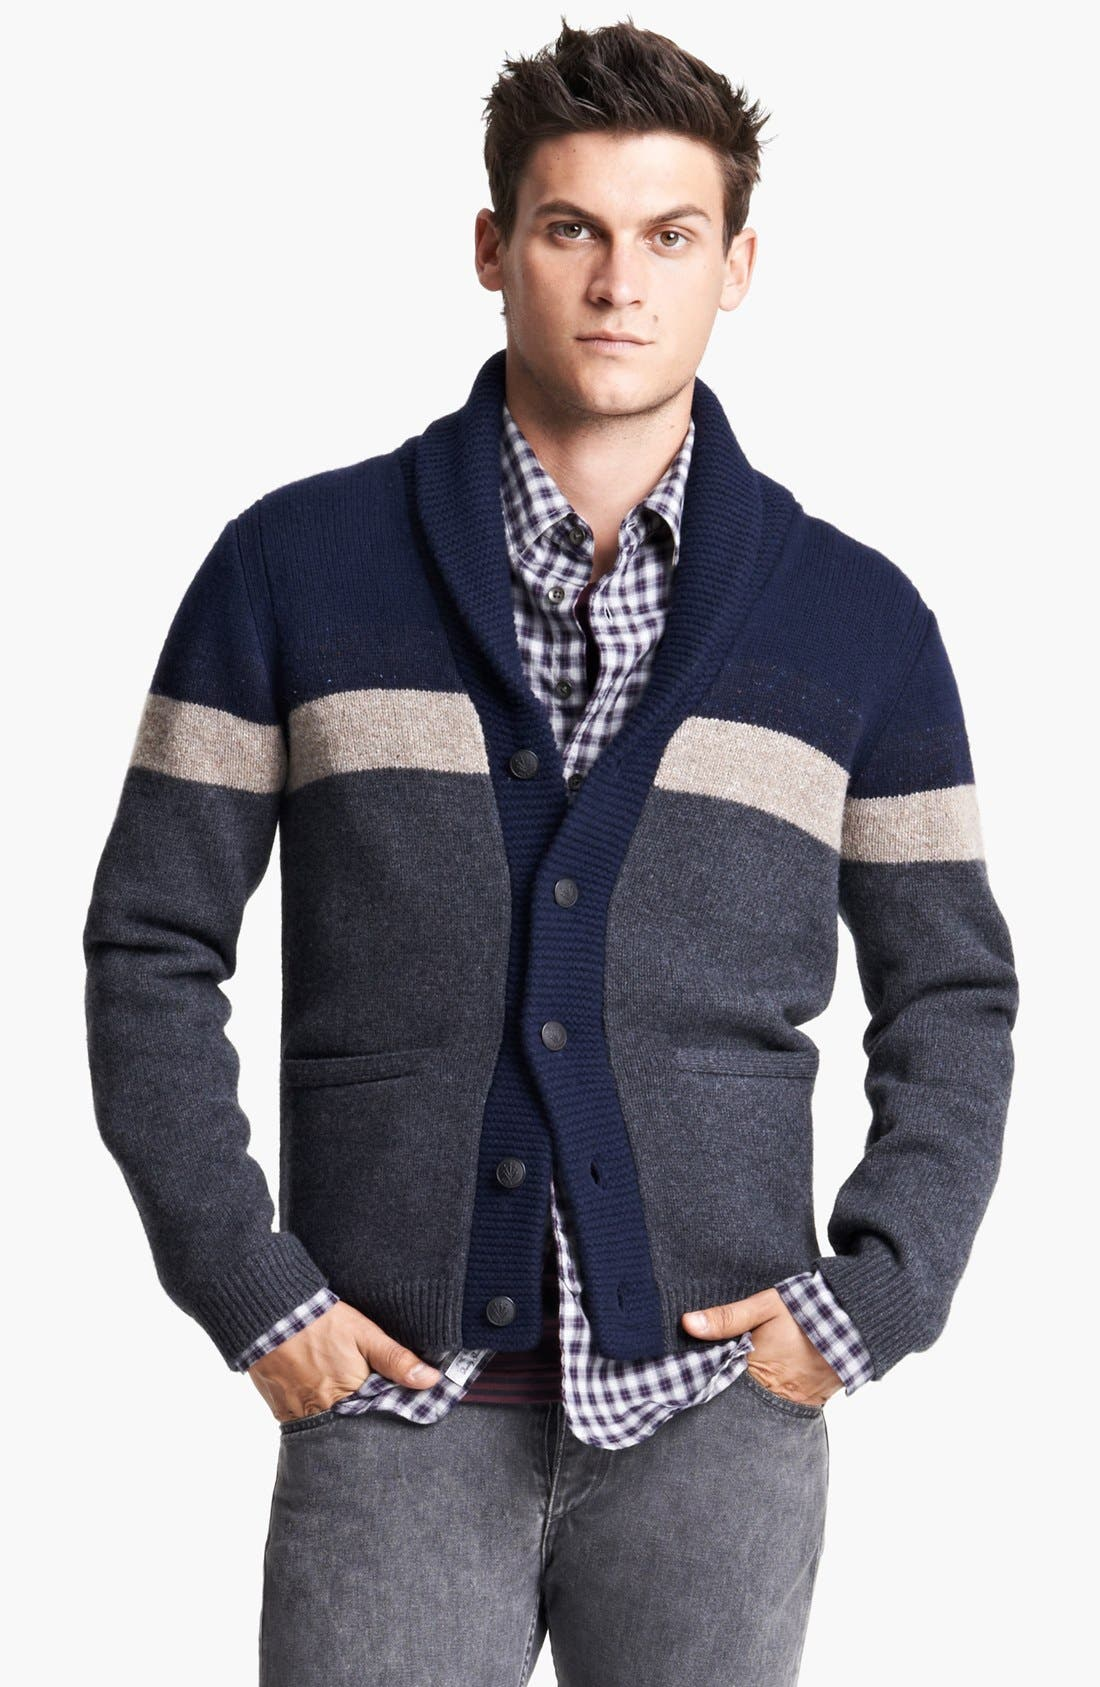 Alternate Image 1 Selected - rag & bone 'Teddy' Shawl Cardigan